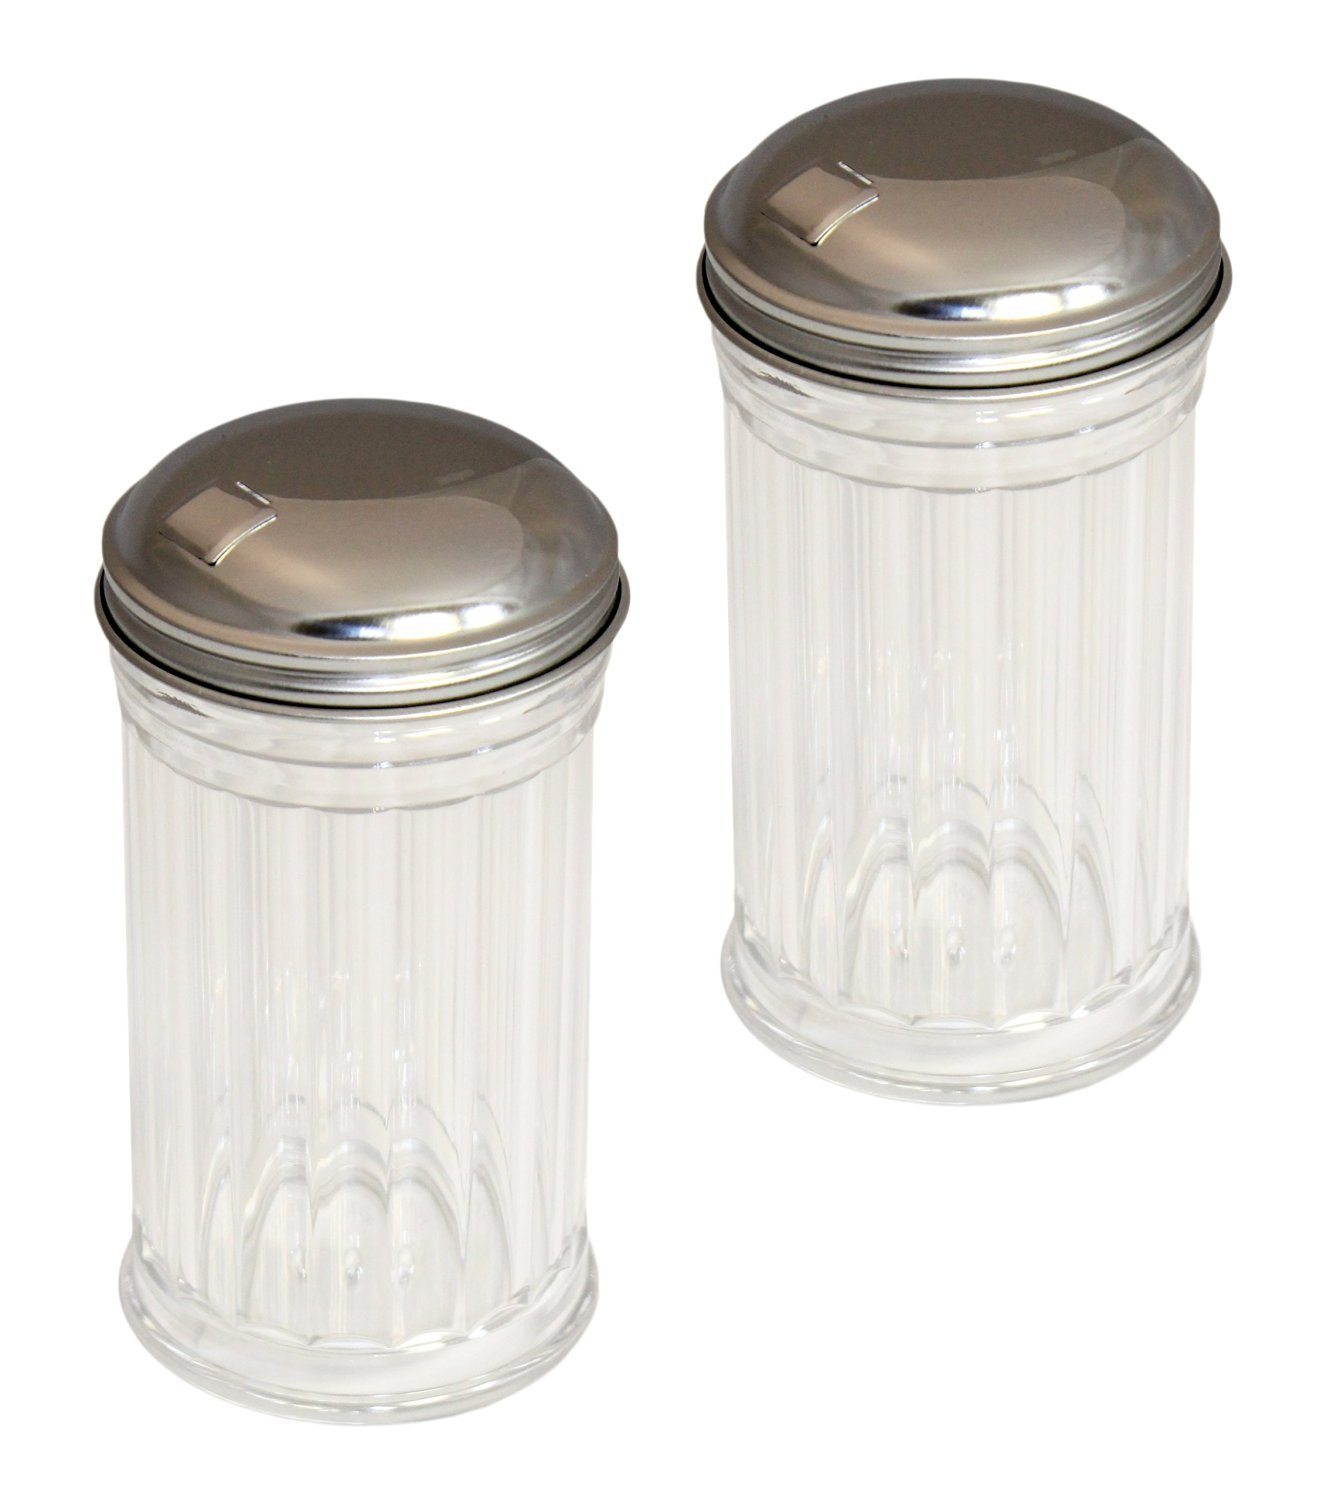 Set of 2 Clear Plastic Sugar Shakers with Stainless Steel Side Flip Pouring Cap